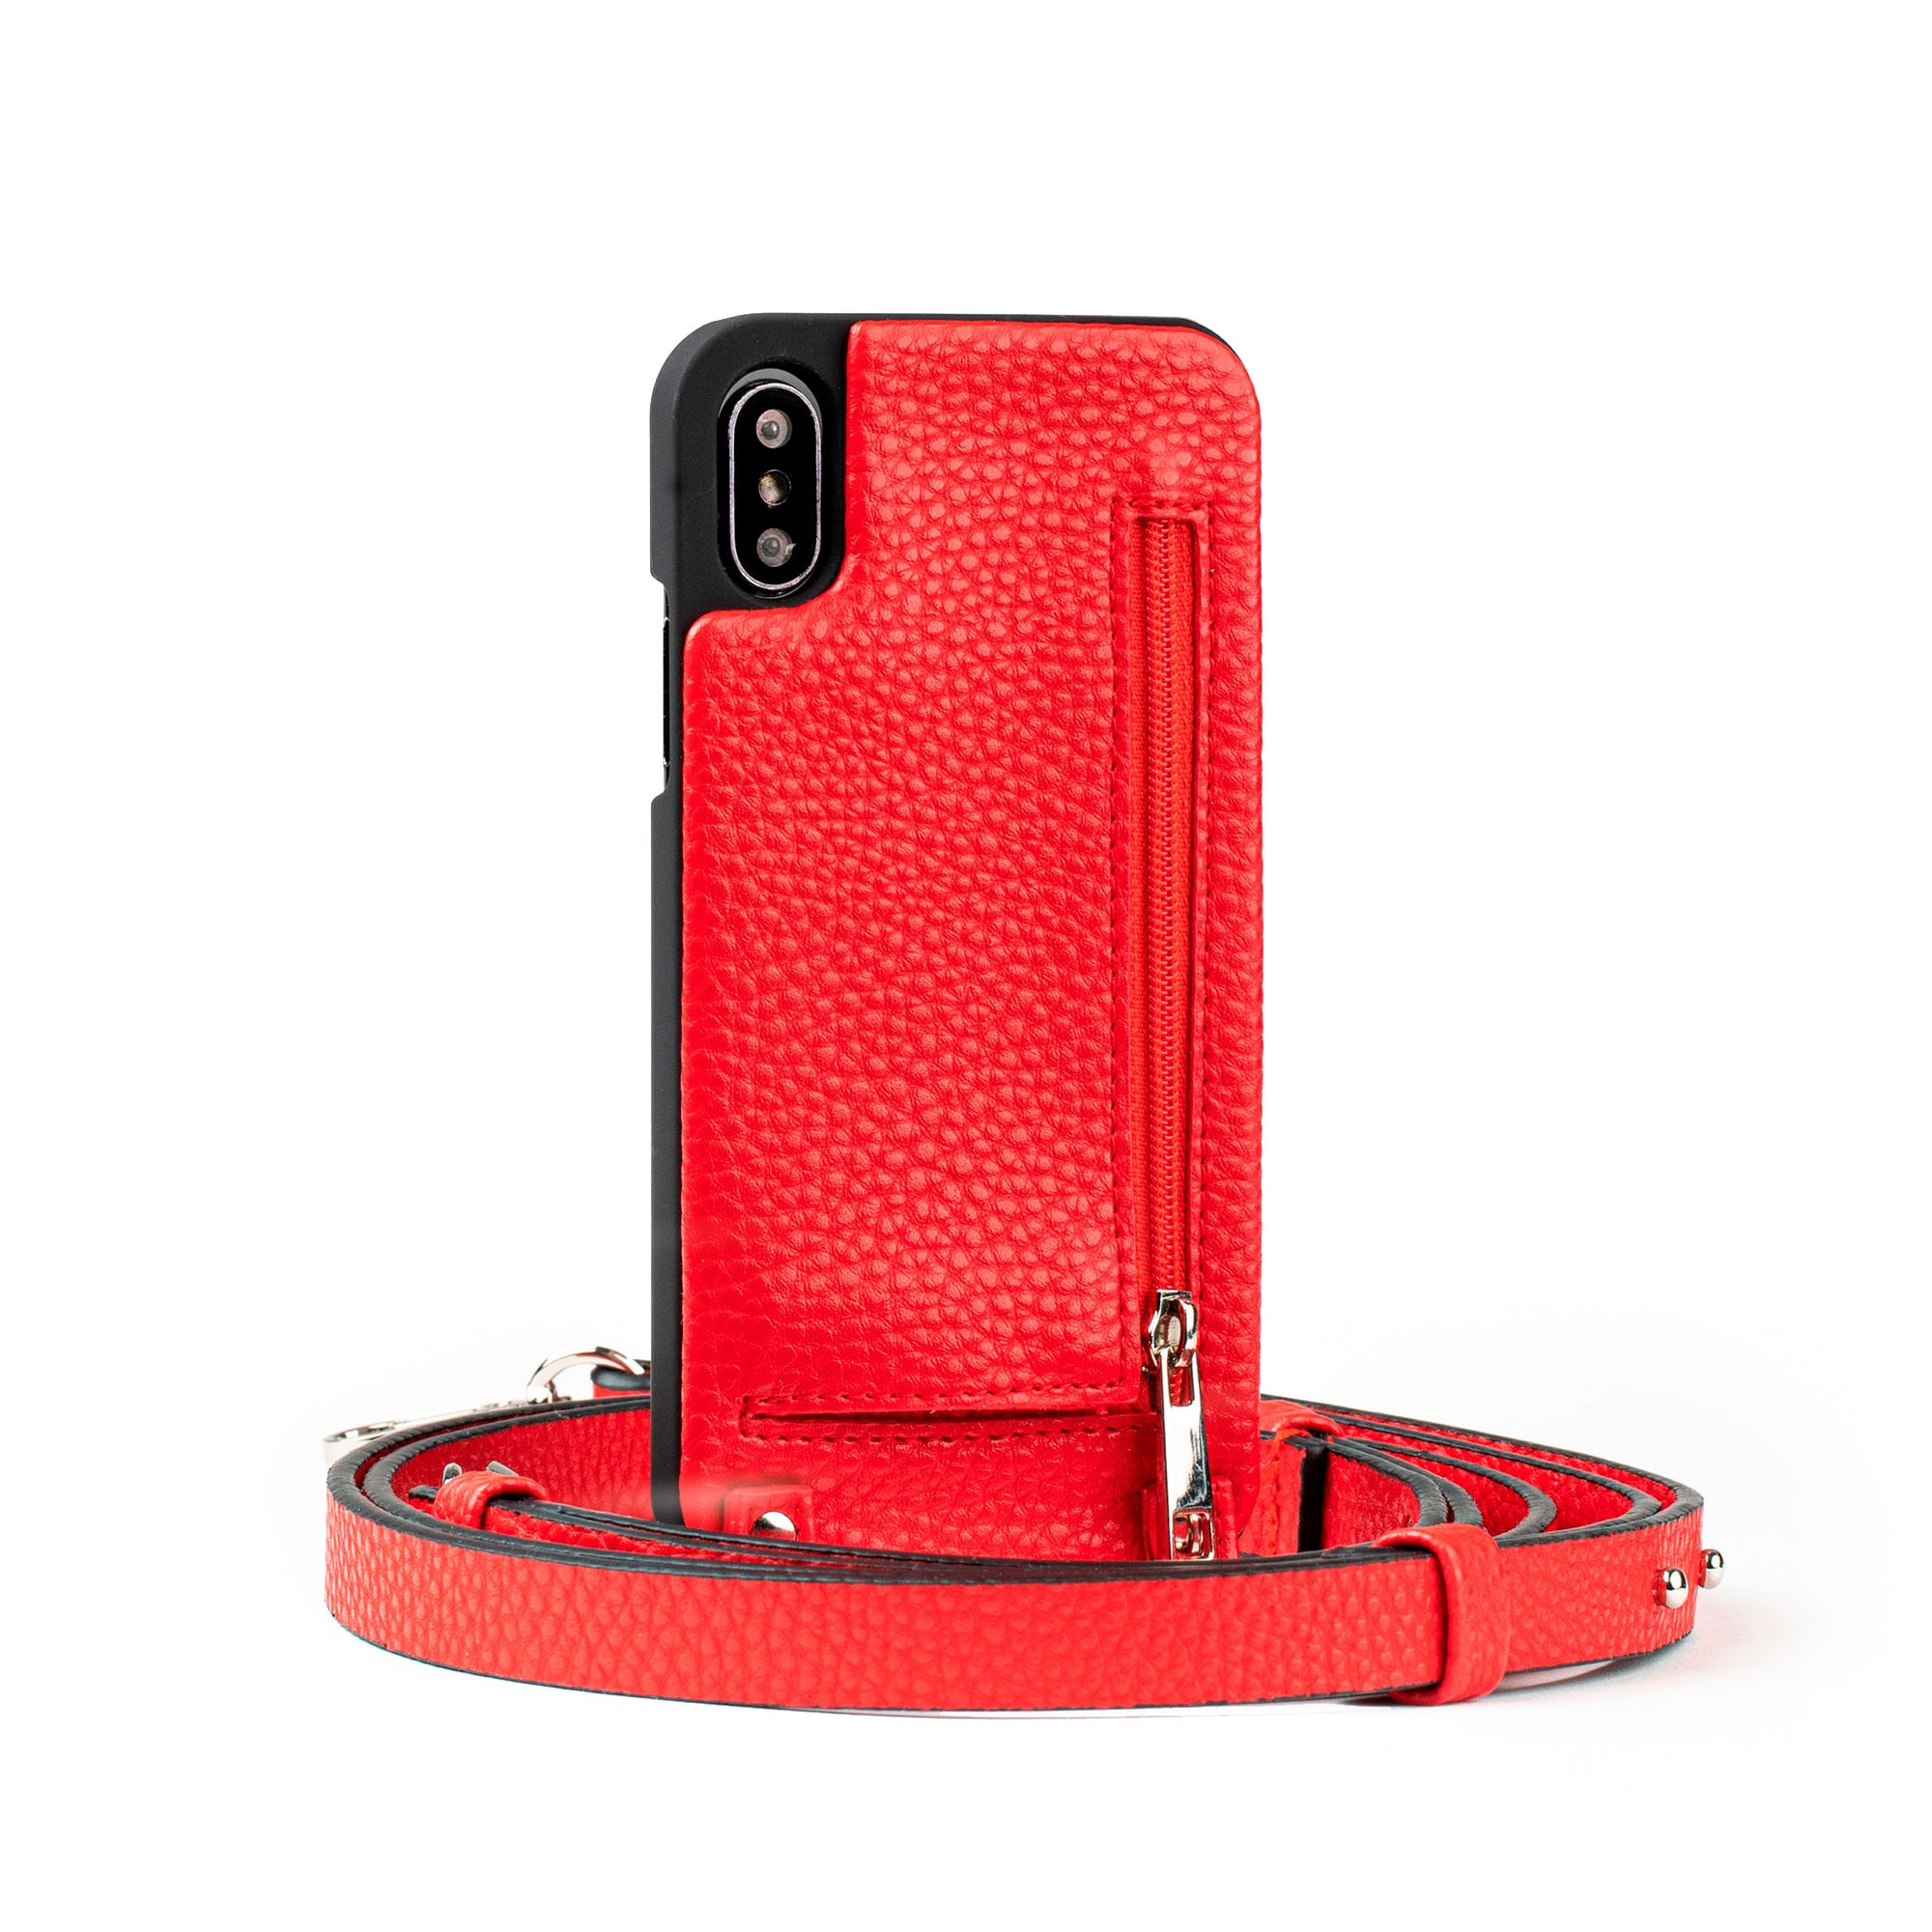 Scarlett - Stylish Phone Case for iPhone X / XS